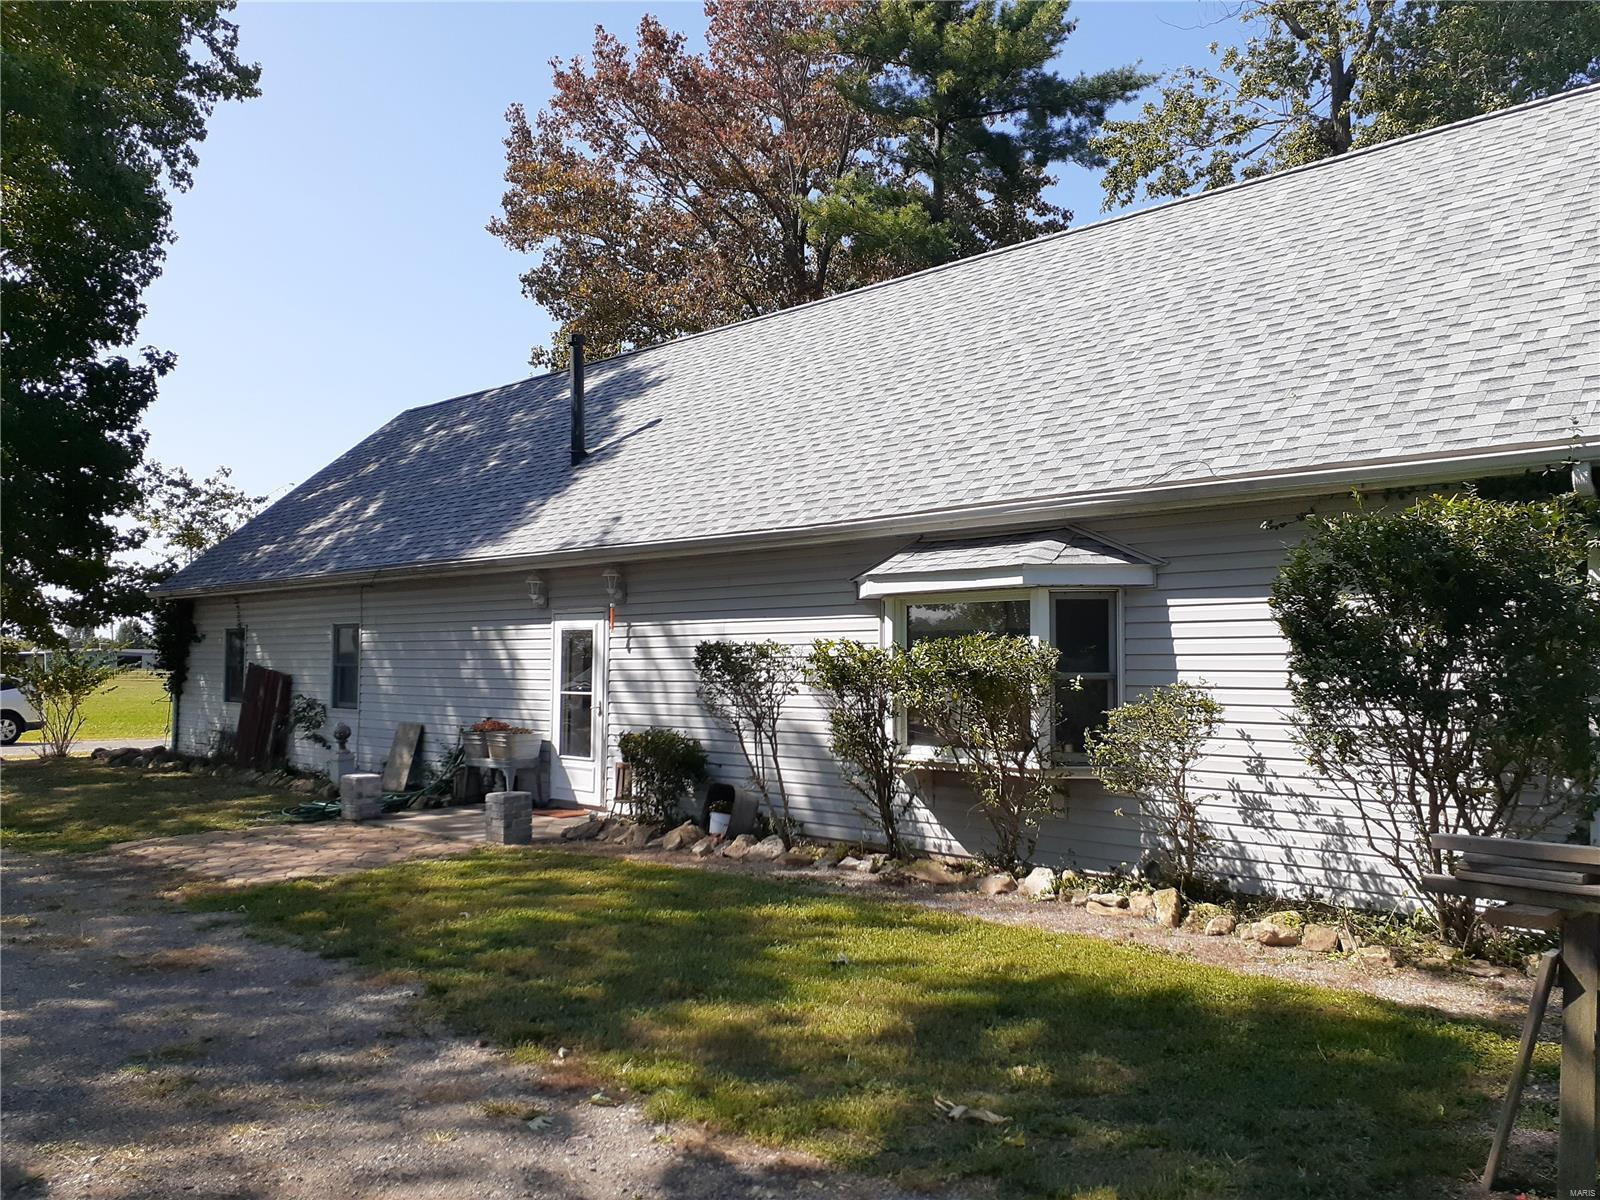 233 233 East Fifth st, Cutler, IL Property Photo - Cutler, IL real estate listing